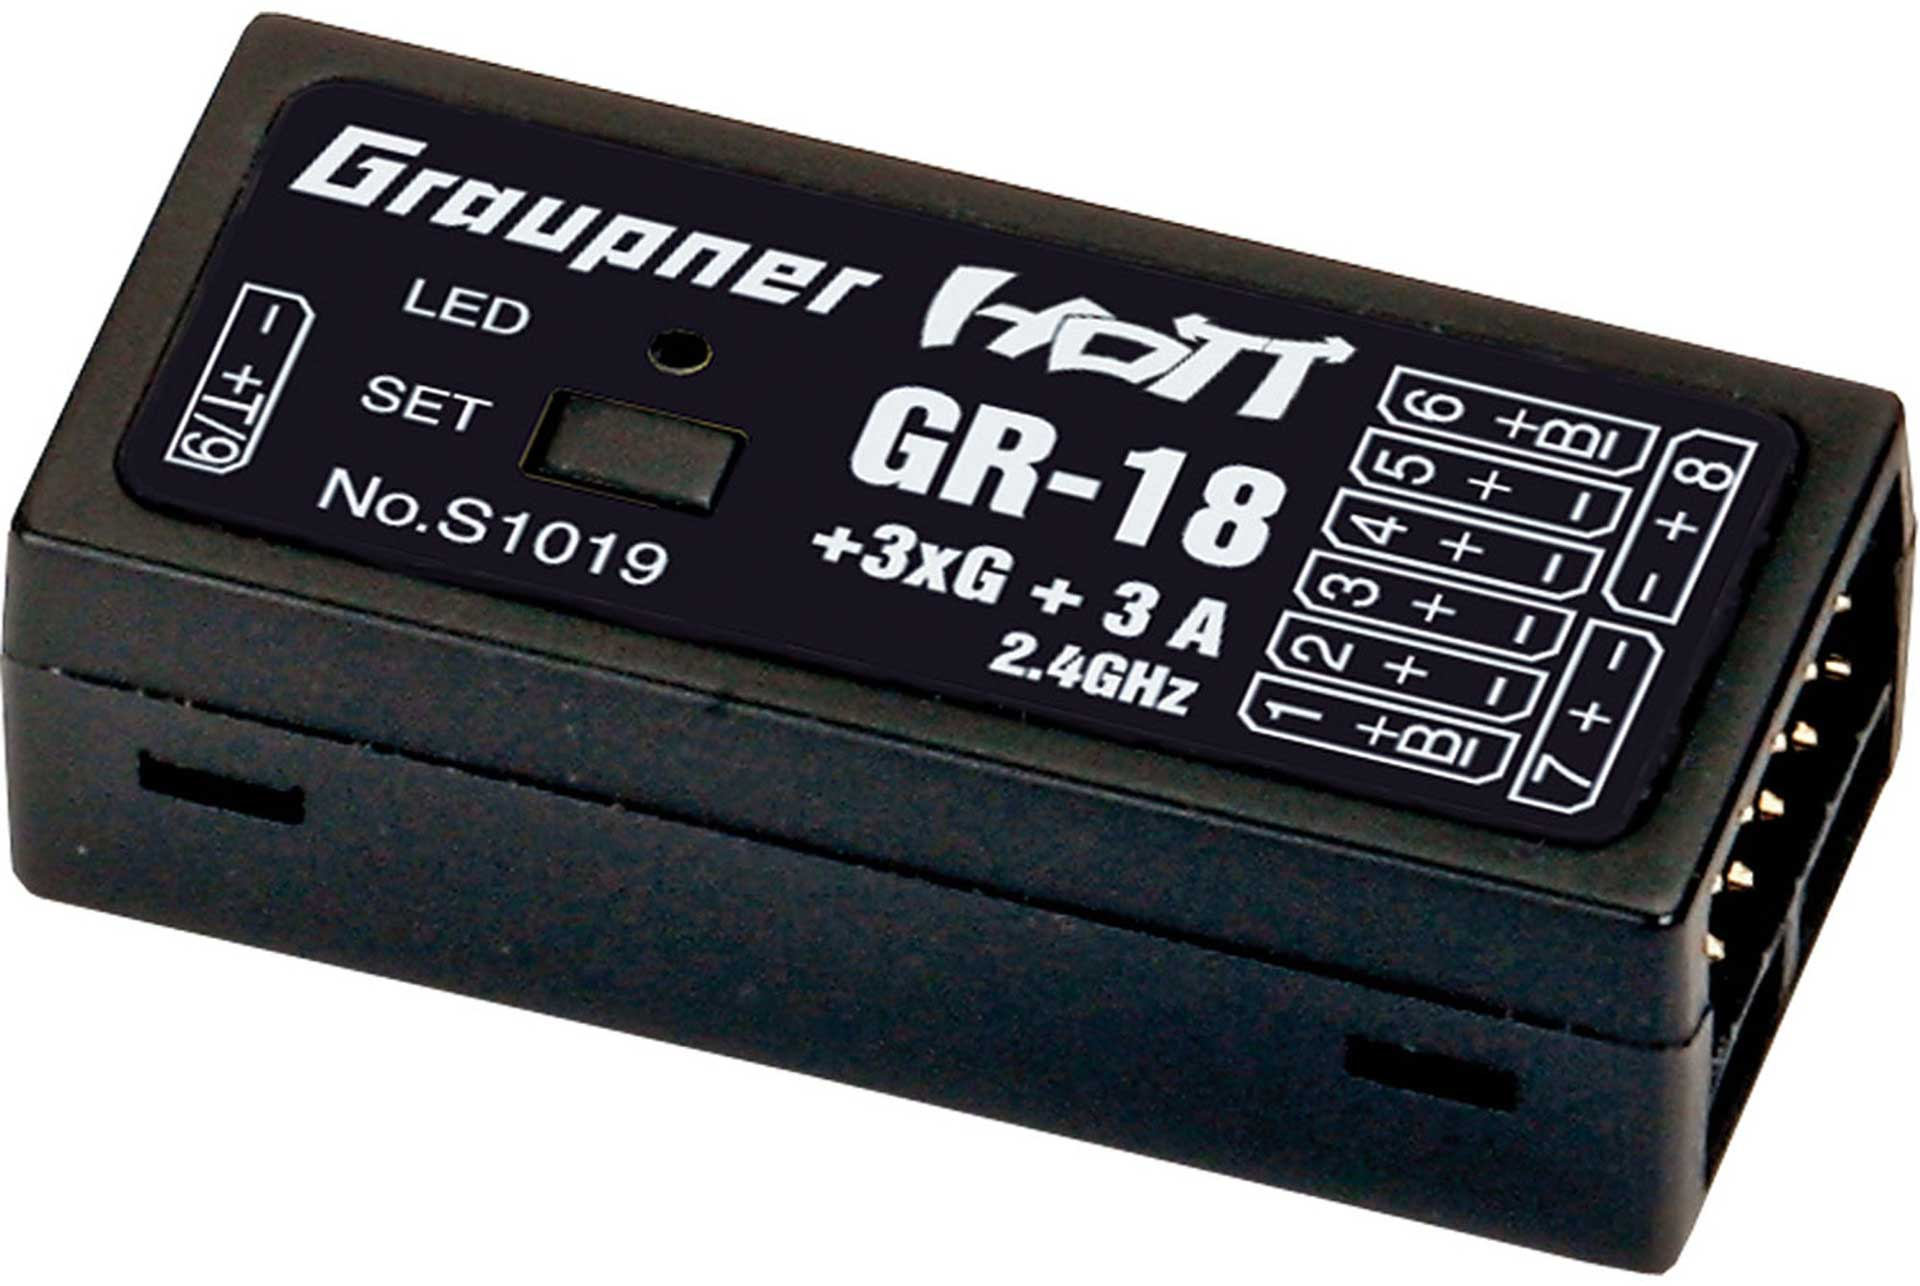 GRAUPNER RECEIVER GR-18 + 3XG + 3A COPTER FLIGHT HOTT